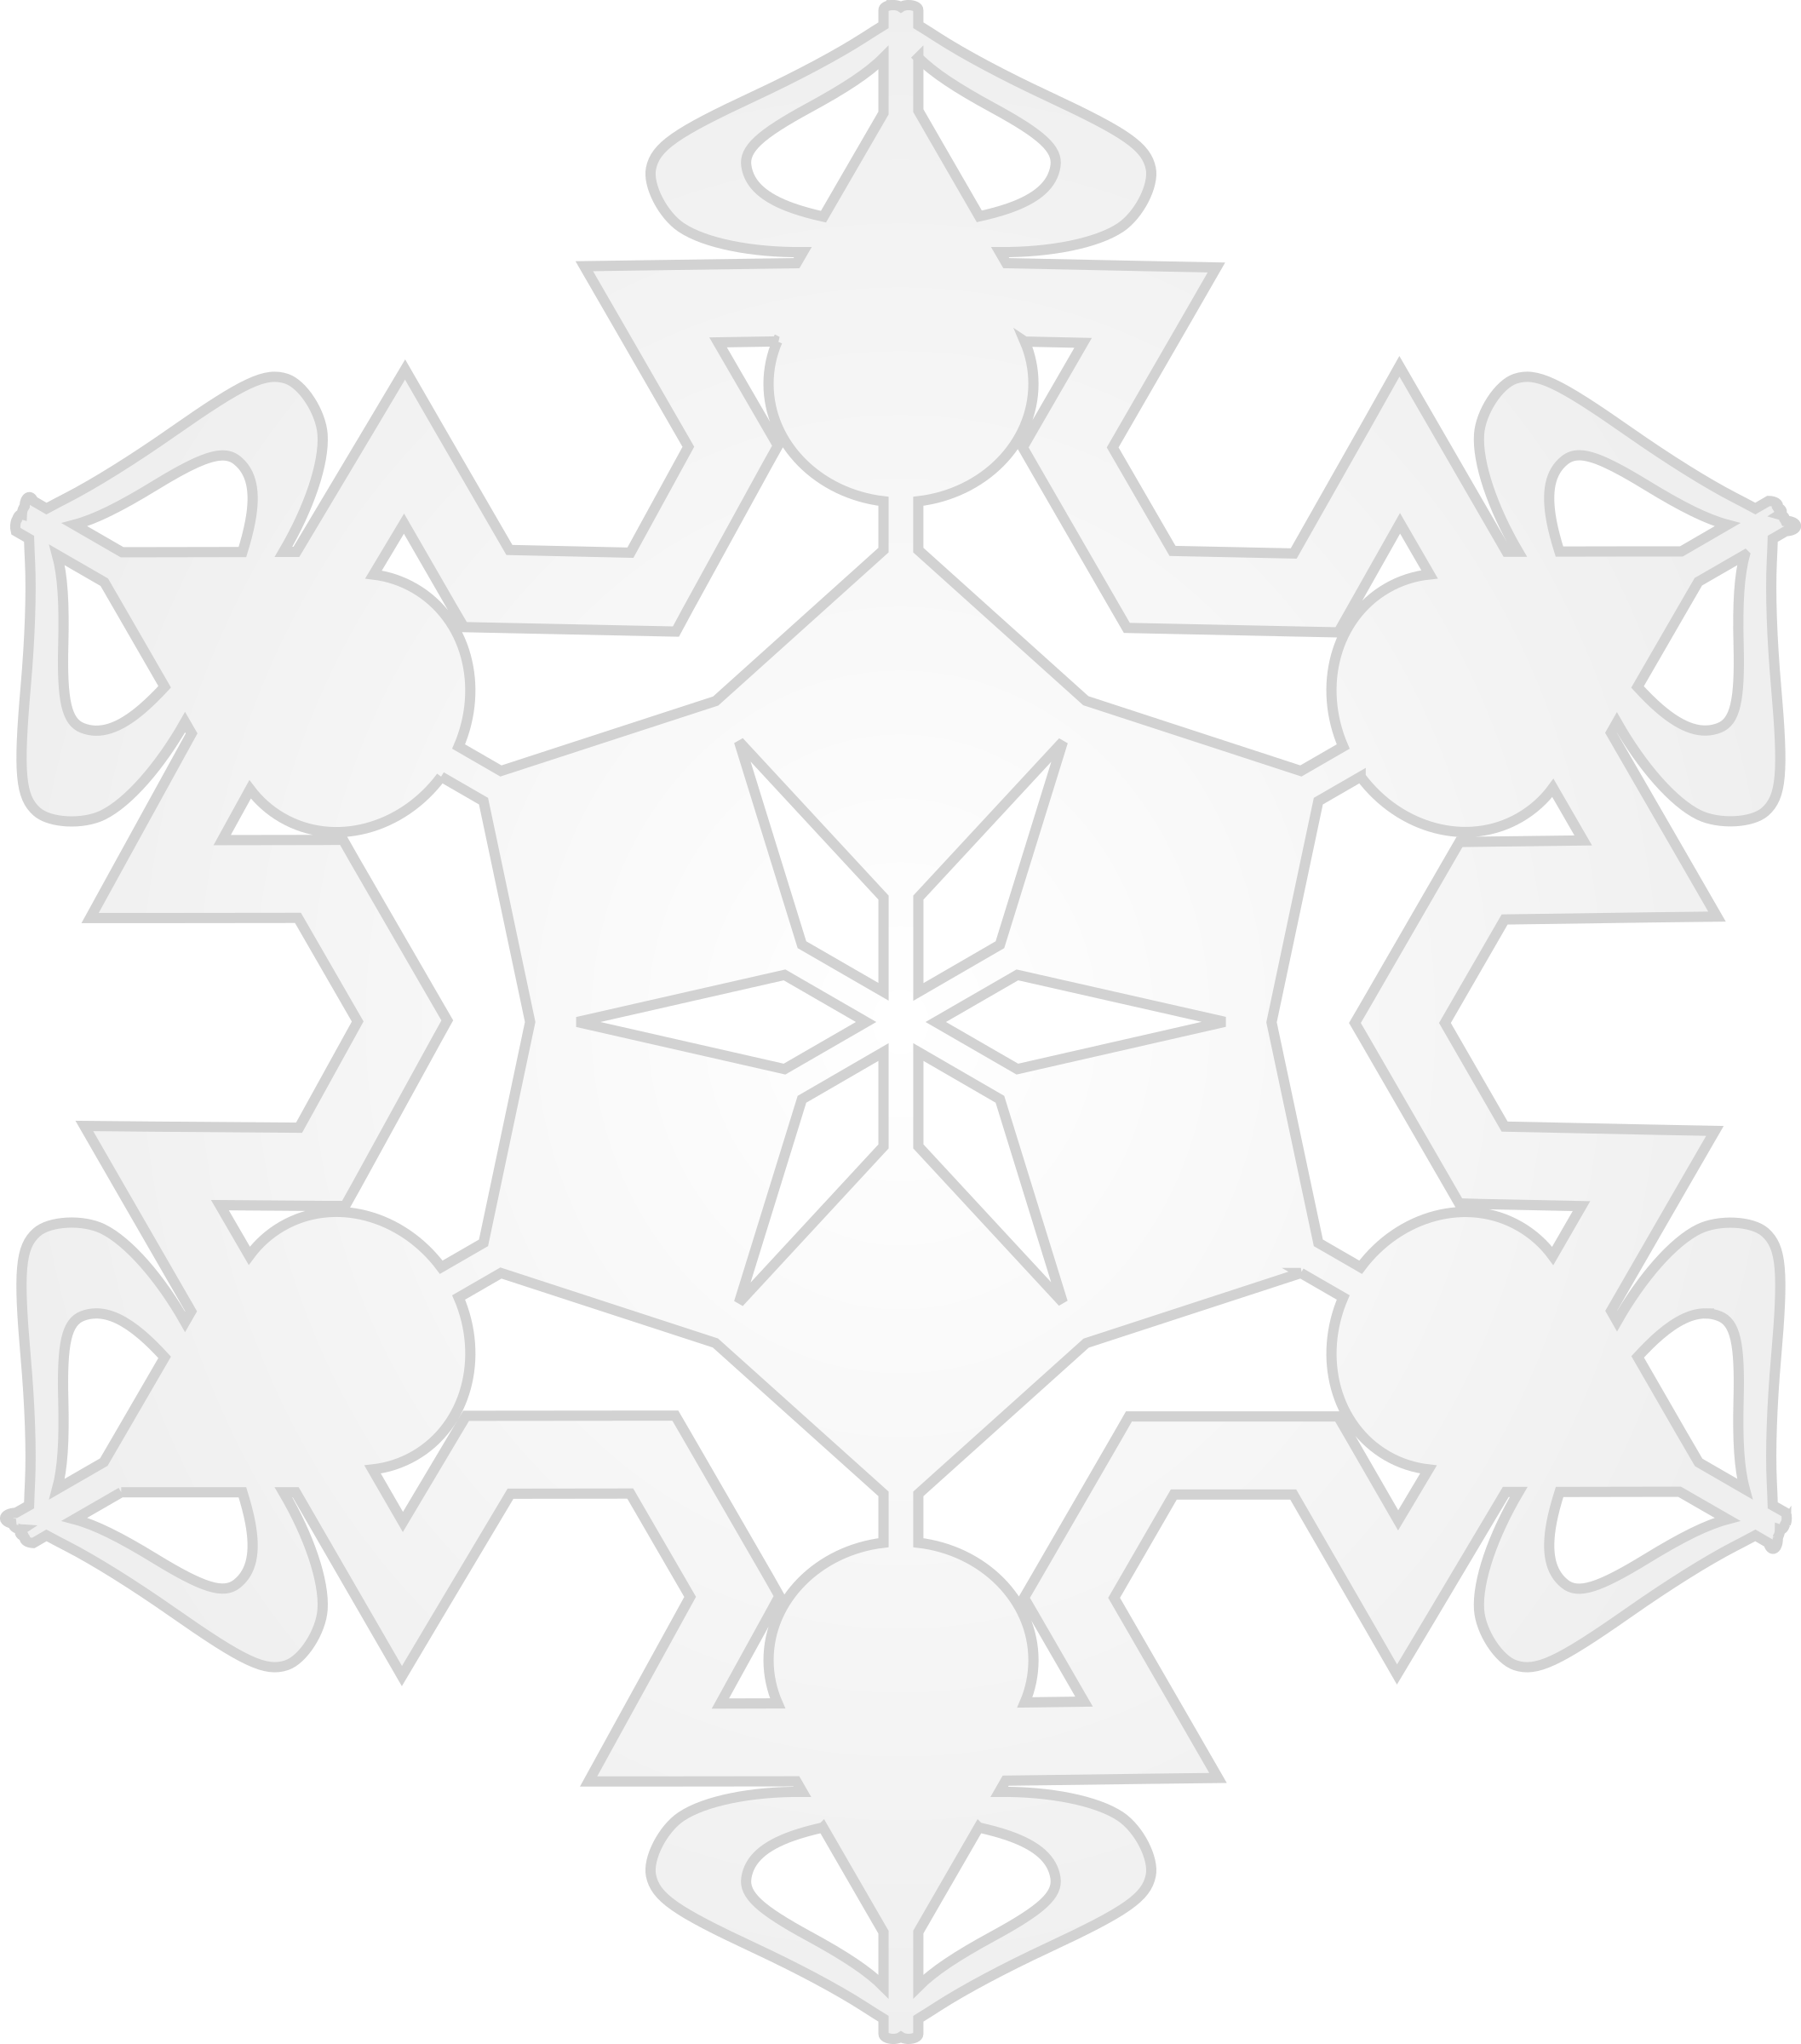 Snowflake 6 by Arvin61r58